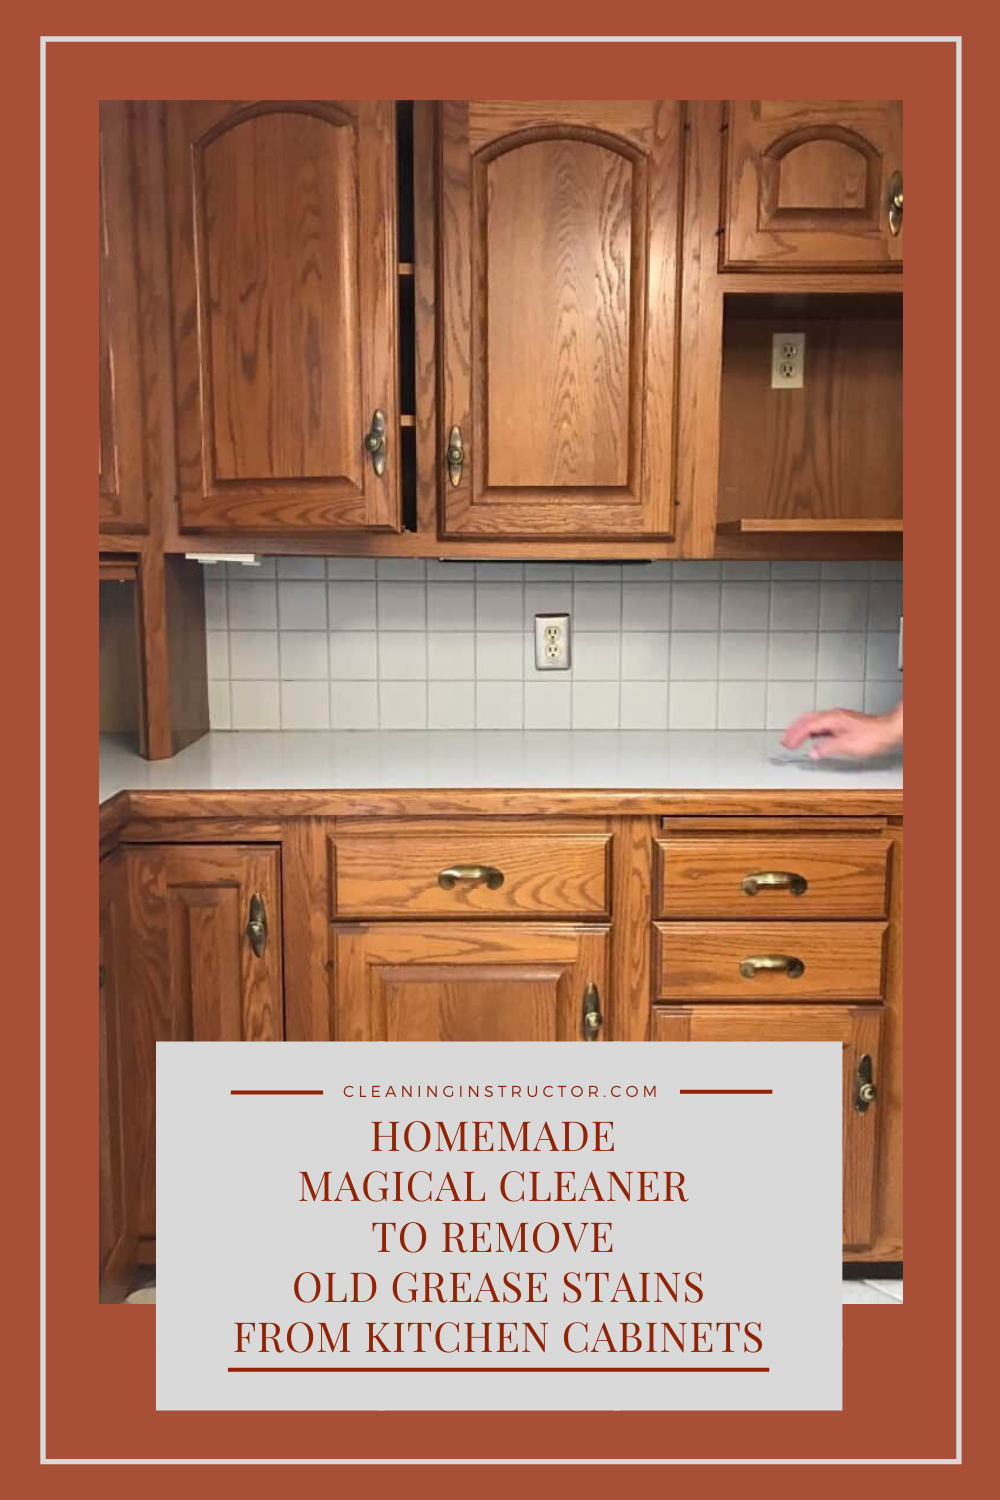 Homemade Magical Cleaner To Remove Old Grease Stains From Kitchen Cabinets In 2020 Kitchen Cabinets Grease Stains Old Kitchen Cabinets